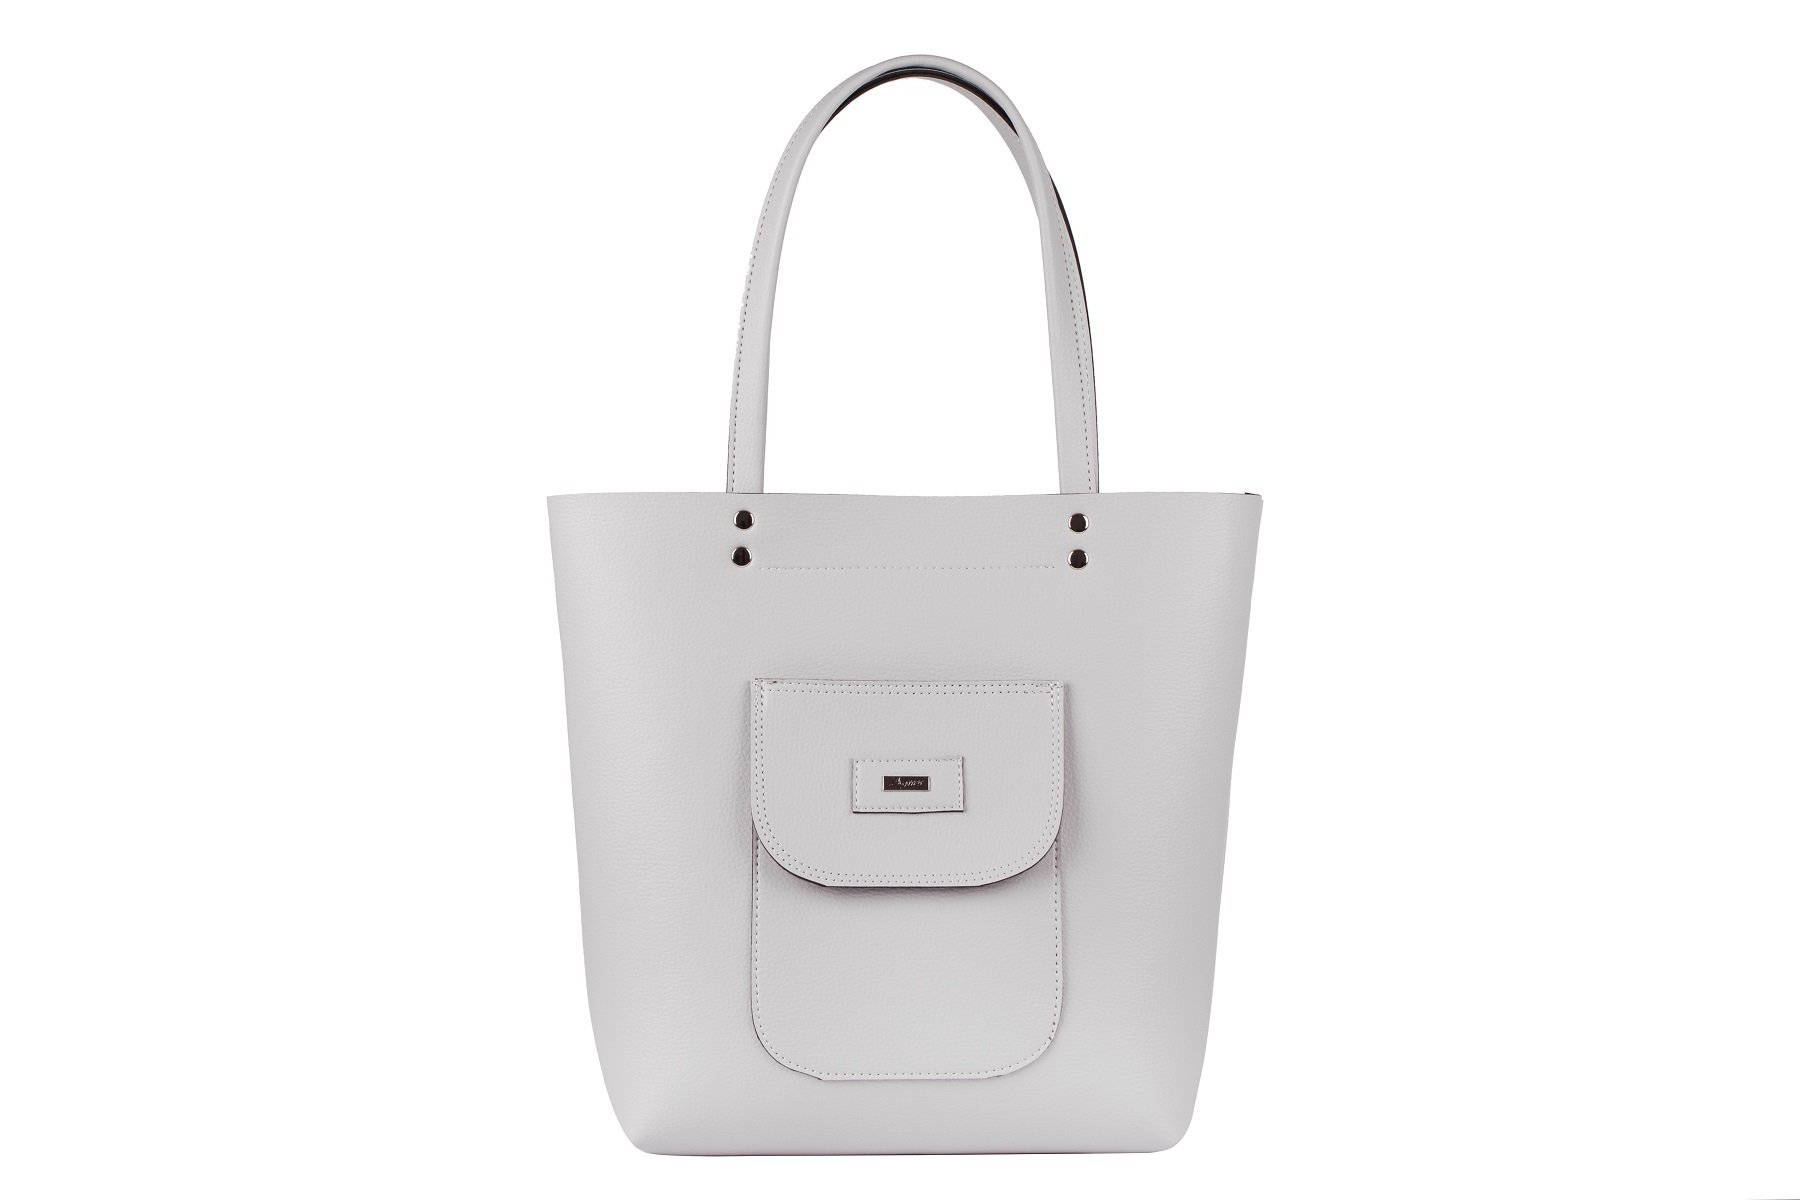 95ffffa34127f Torebka damska na ramię i do ręki shopper bag A4 - MB CLASSIC BAG